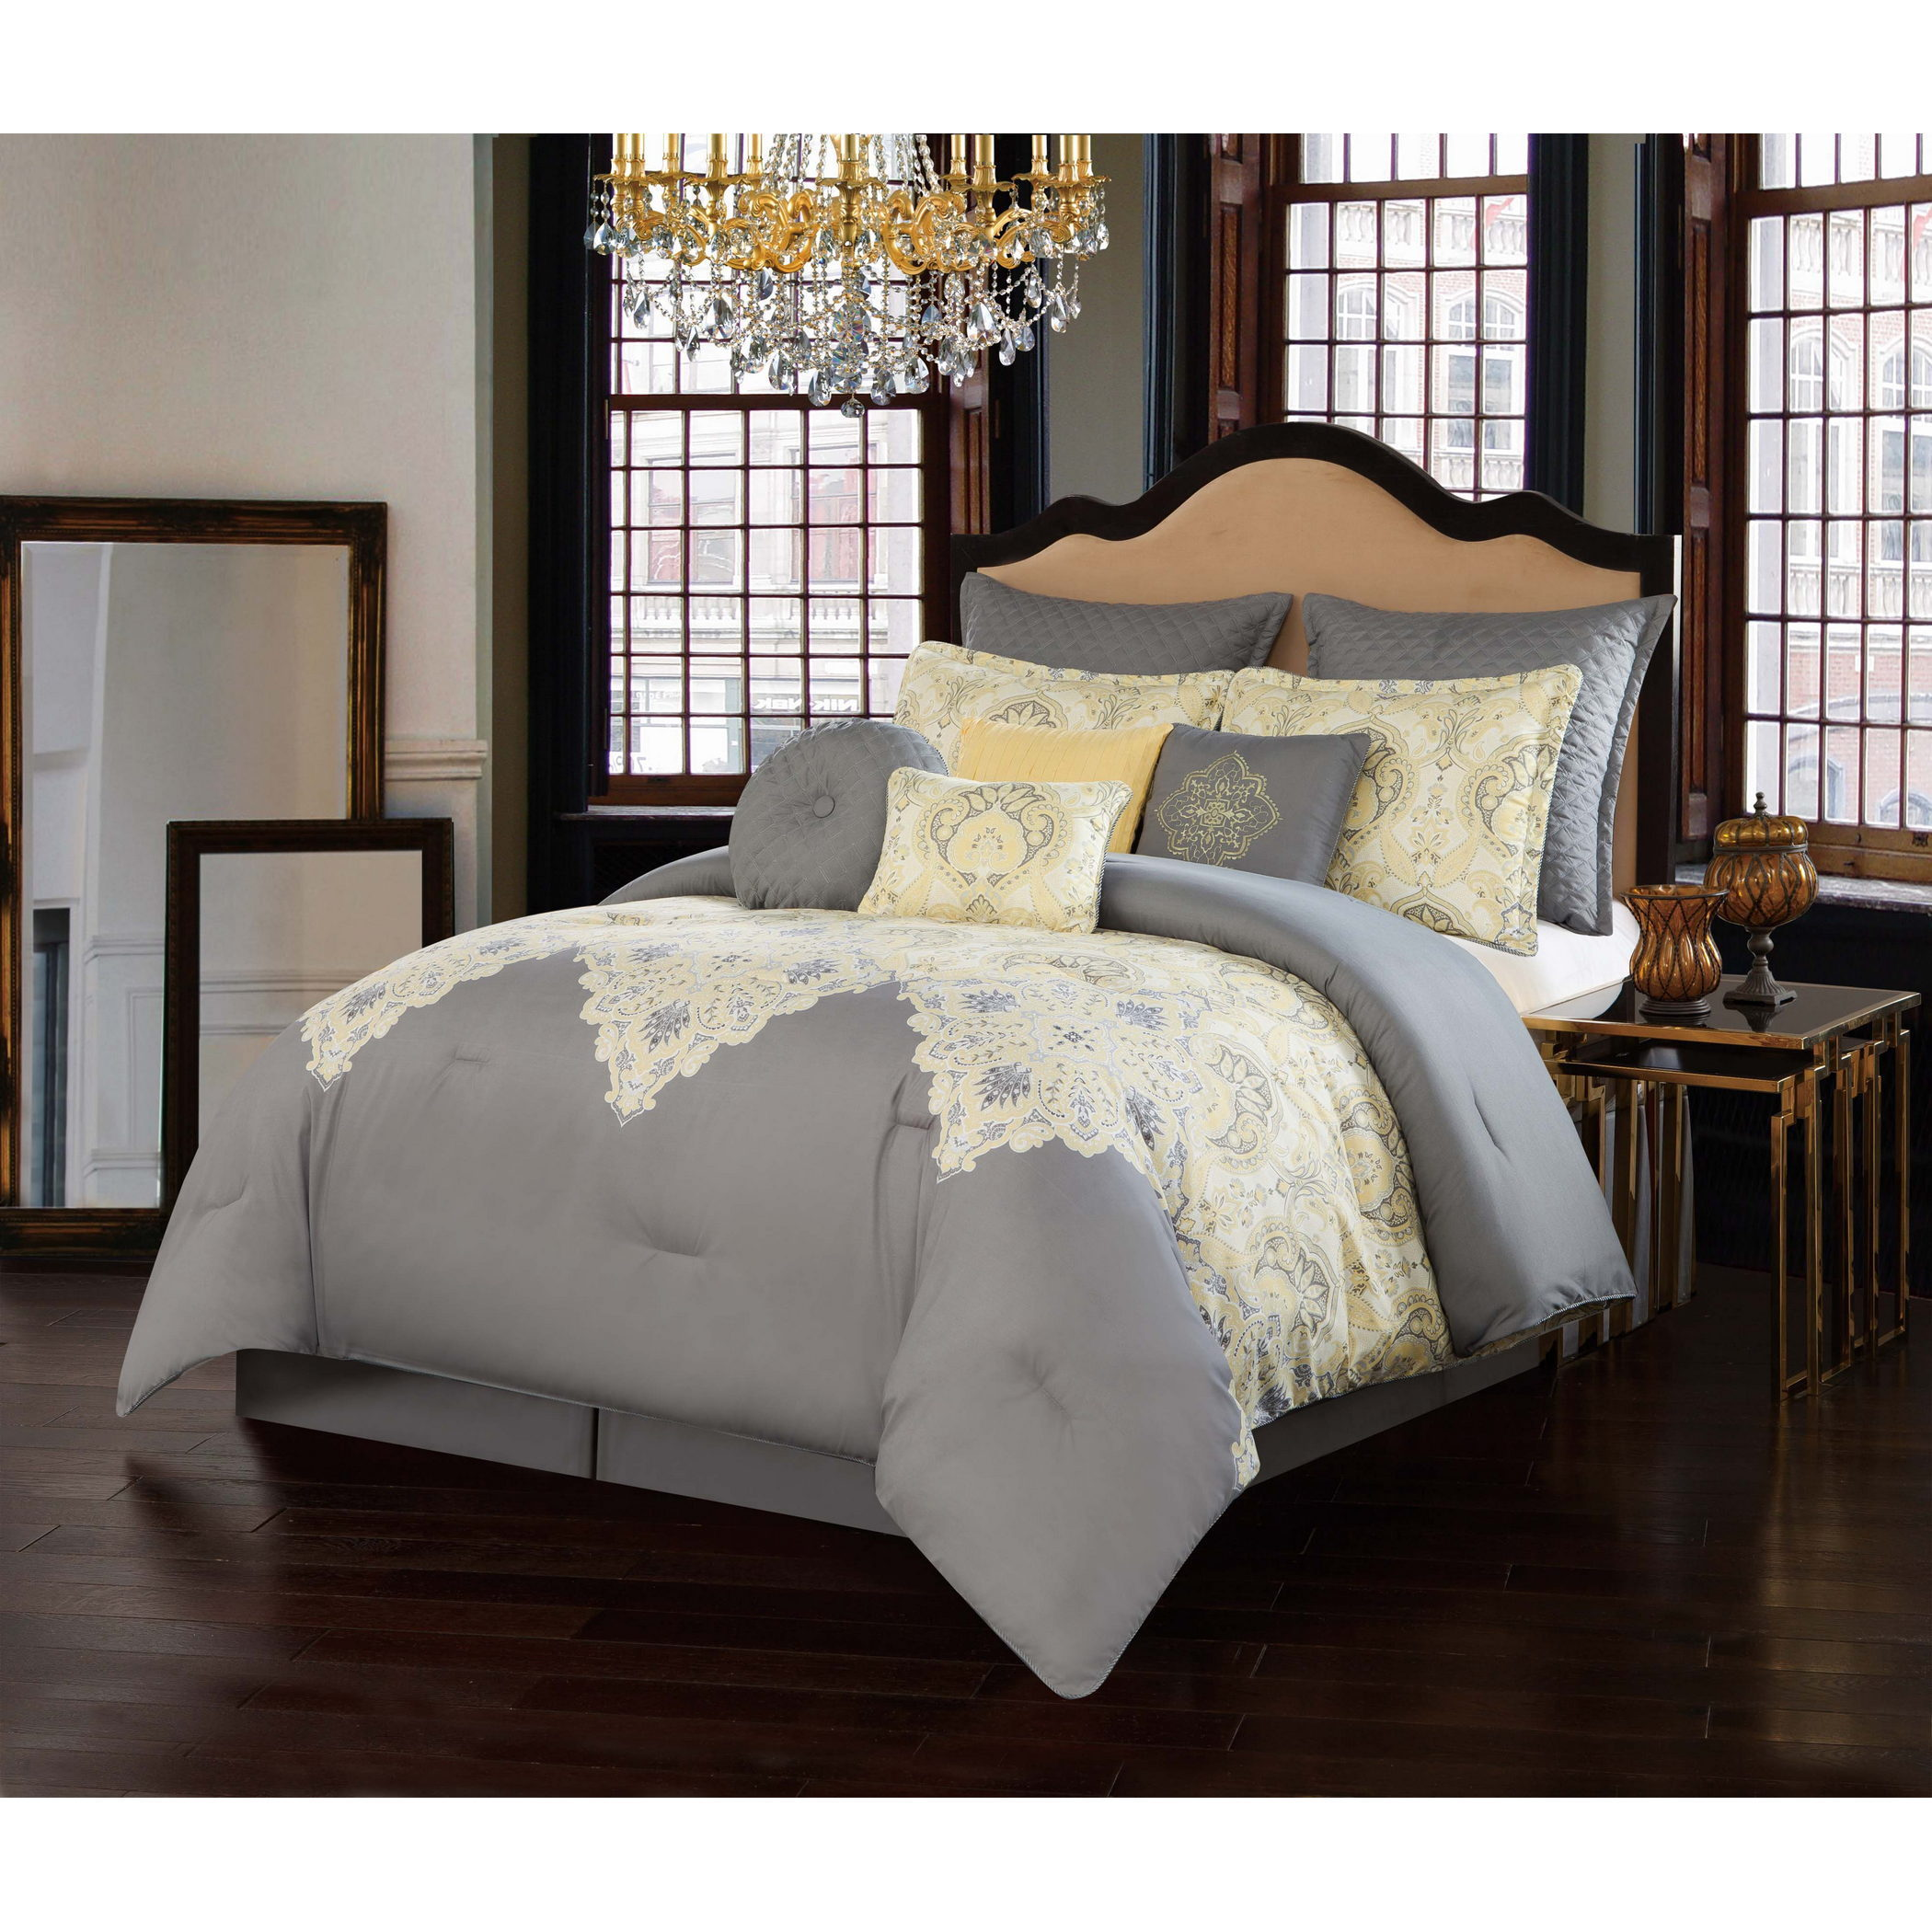 grey luxury modern cotton men sets egyptian throughout contemporary gray for amazing bedspreads omega sheets comforter dark bedding within